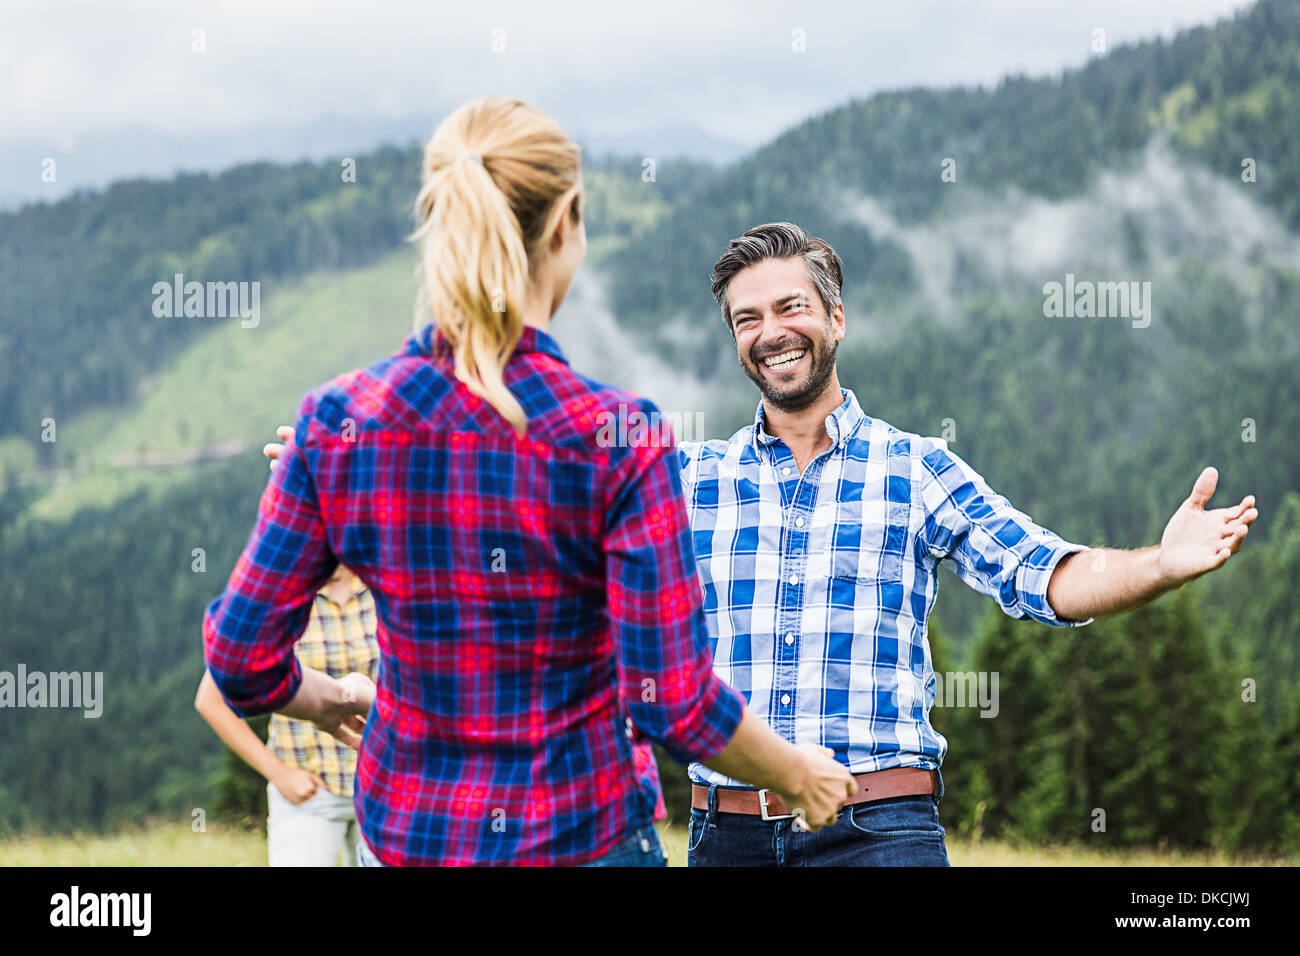 Man greeting woman with open arms, Tirol, Austria - Stock Image